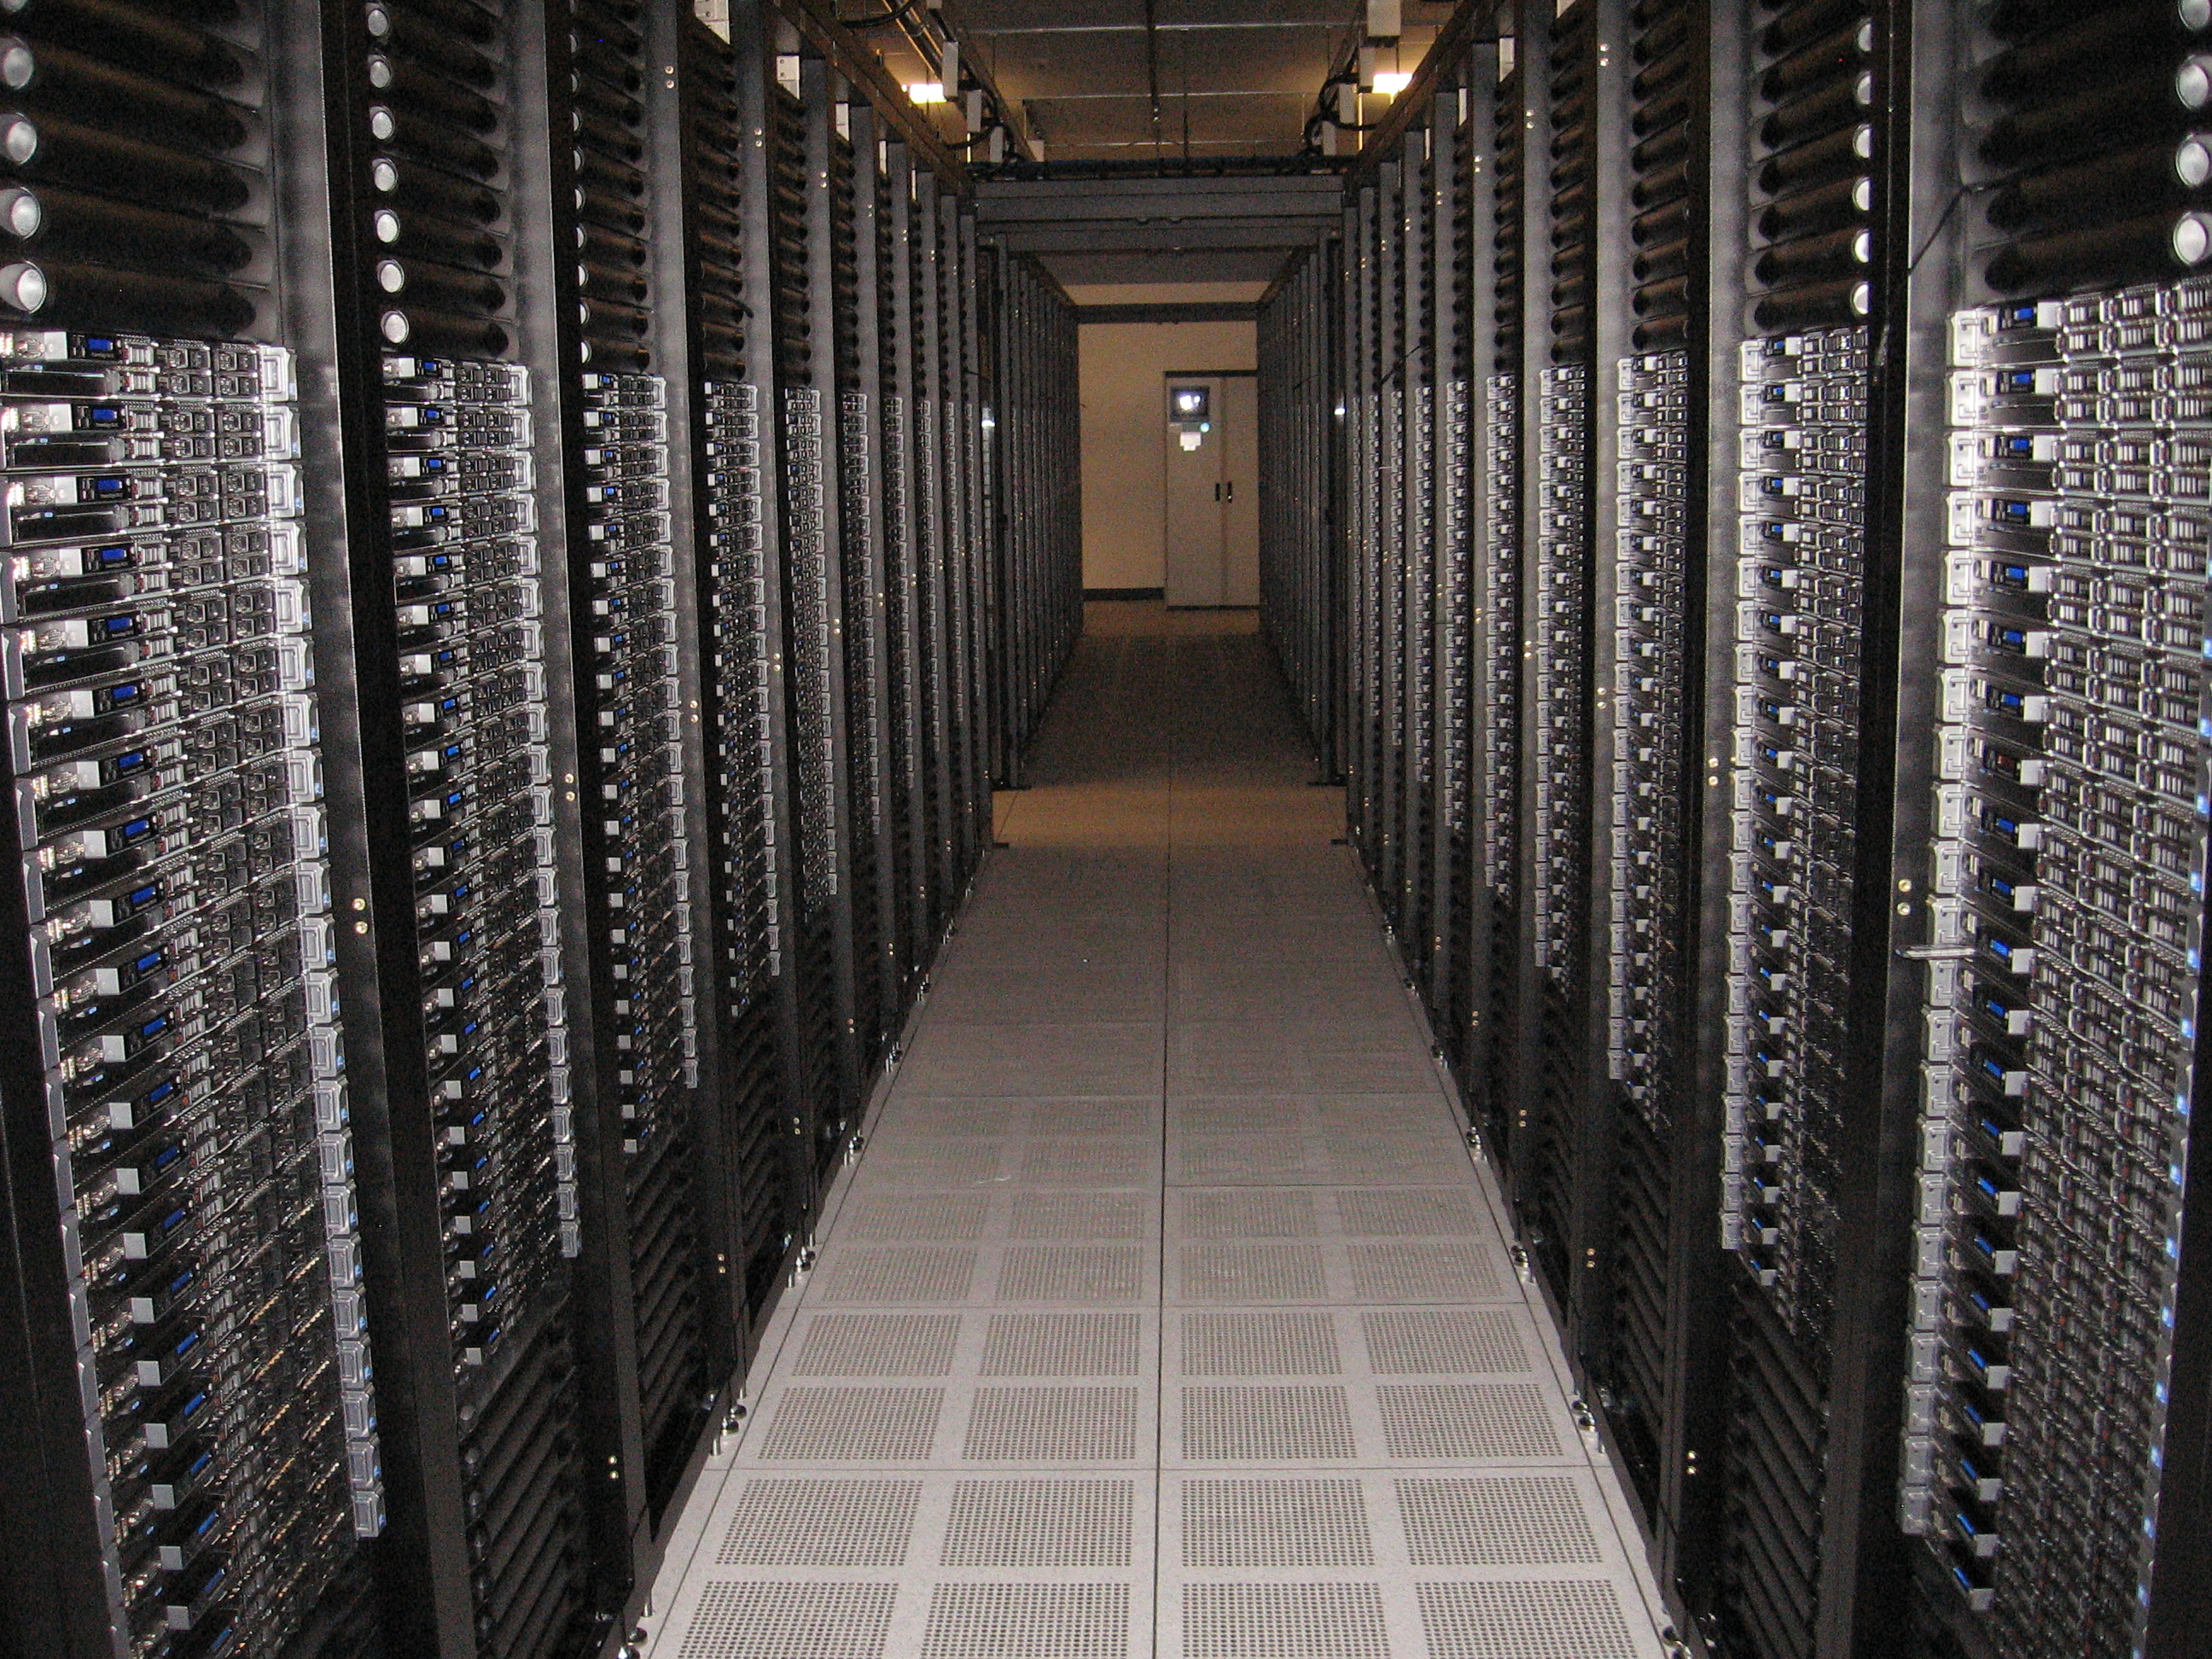 Zynga zCloud server row